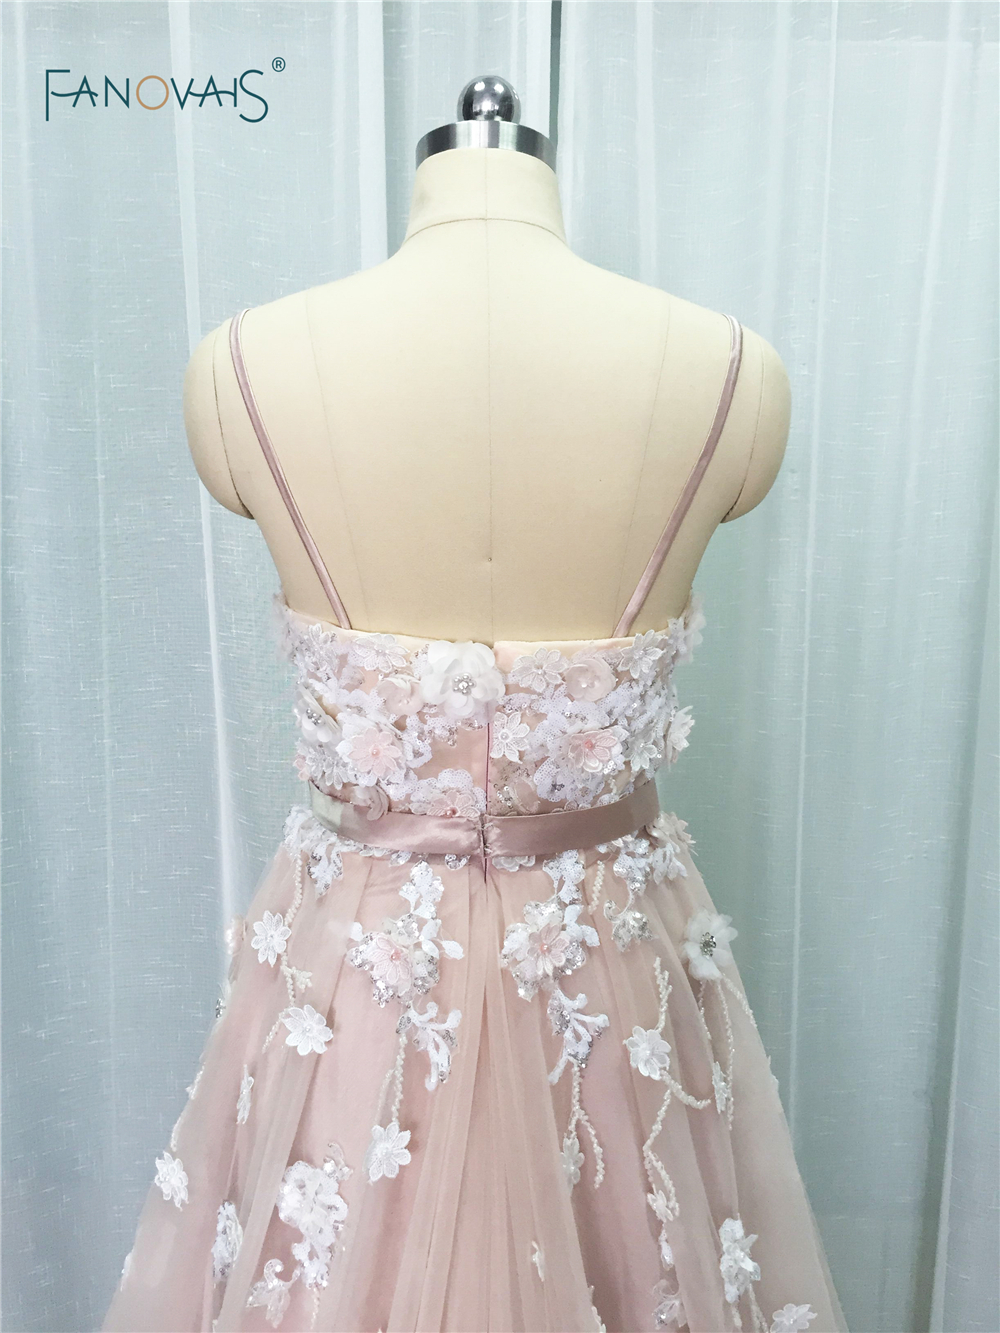 Image 4 - Sexy 2019 Blush Wedding Dresses with Crystal Spaghetti Straps Tulle Flower Wedding Gown Bridal Gown Vestido de Novia BT04blush wedding dresswedding dress with crystalswedding dress -